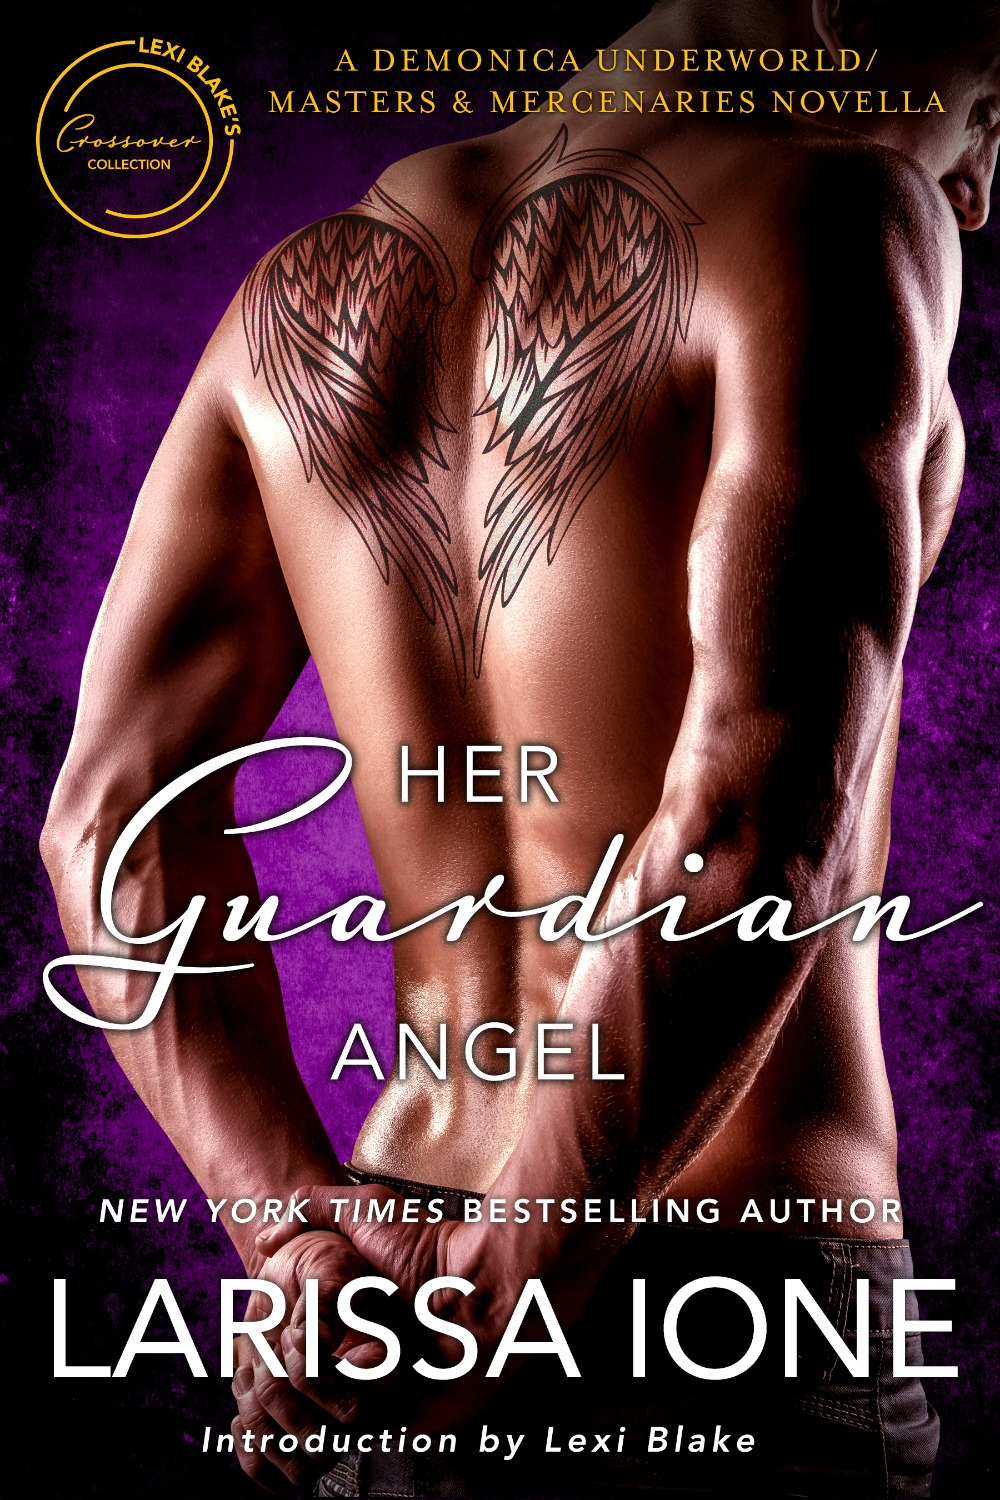 Her Guardian Angel: A Demonica Underworld/Masters and Mercenaries Novella by Larissa Ione   After a difficult childhood and a turbulent stint in the military, Declan Burke finally got his act together. Now he's a battle-hardened professional bodyguard who takes his job at McKay-Taggart seriously and his playtime – and his playmates – just as seriously. One thing he never does, however, is mix business with pleasure. But when the mysterious, gorgeous Suzanne D'Angelo needs his protection from a stalker, his desire for her burns out of control, tempting him to break all the rules…even as he's drawn into a dark, dangerous world he didn't know existed.     Suzanne is an earthbound angel on her critical first mission: protecting Declan from an emerging supernatural threat at all costs. To keep him close, she hires him as her bodyguard. It doesn't take long for her to realize that she's in over her head, defenseless against this devastatingly sexy human who makes her crave his forbidden touch.     Together they'll have to draw on every ounce of their collective training to resist each other as the enemy closes in, but soon it becomes apparent that nothing could have prepared them for the menace to their lives…or their hearts.    Amazon:   http://amzn.to/2q2NLsa   B&N:  http://bit.ly/2Grthgv  iBooks:    https://apple.co/2IwdIWb  Kobo:  http://bit.ly/2o91Ph9     Google Play:  http://bit.ly/2uilNqN